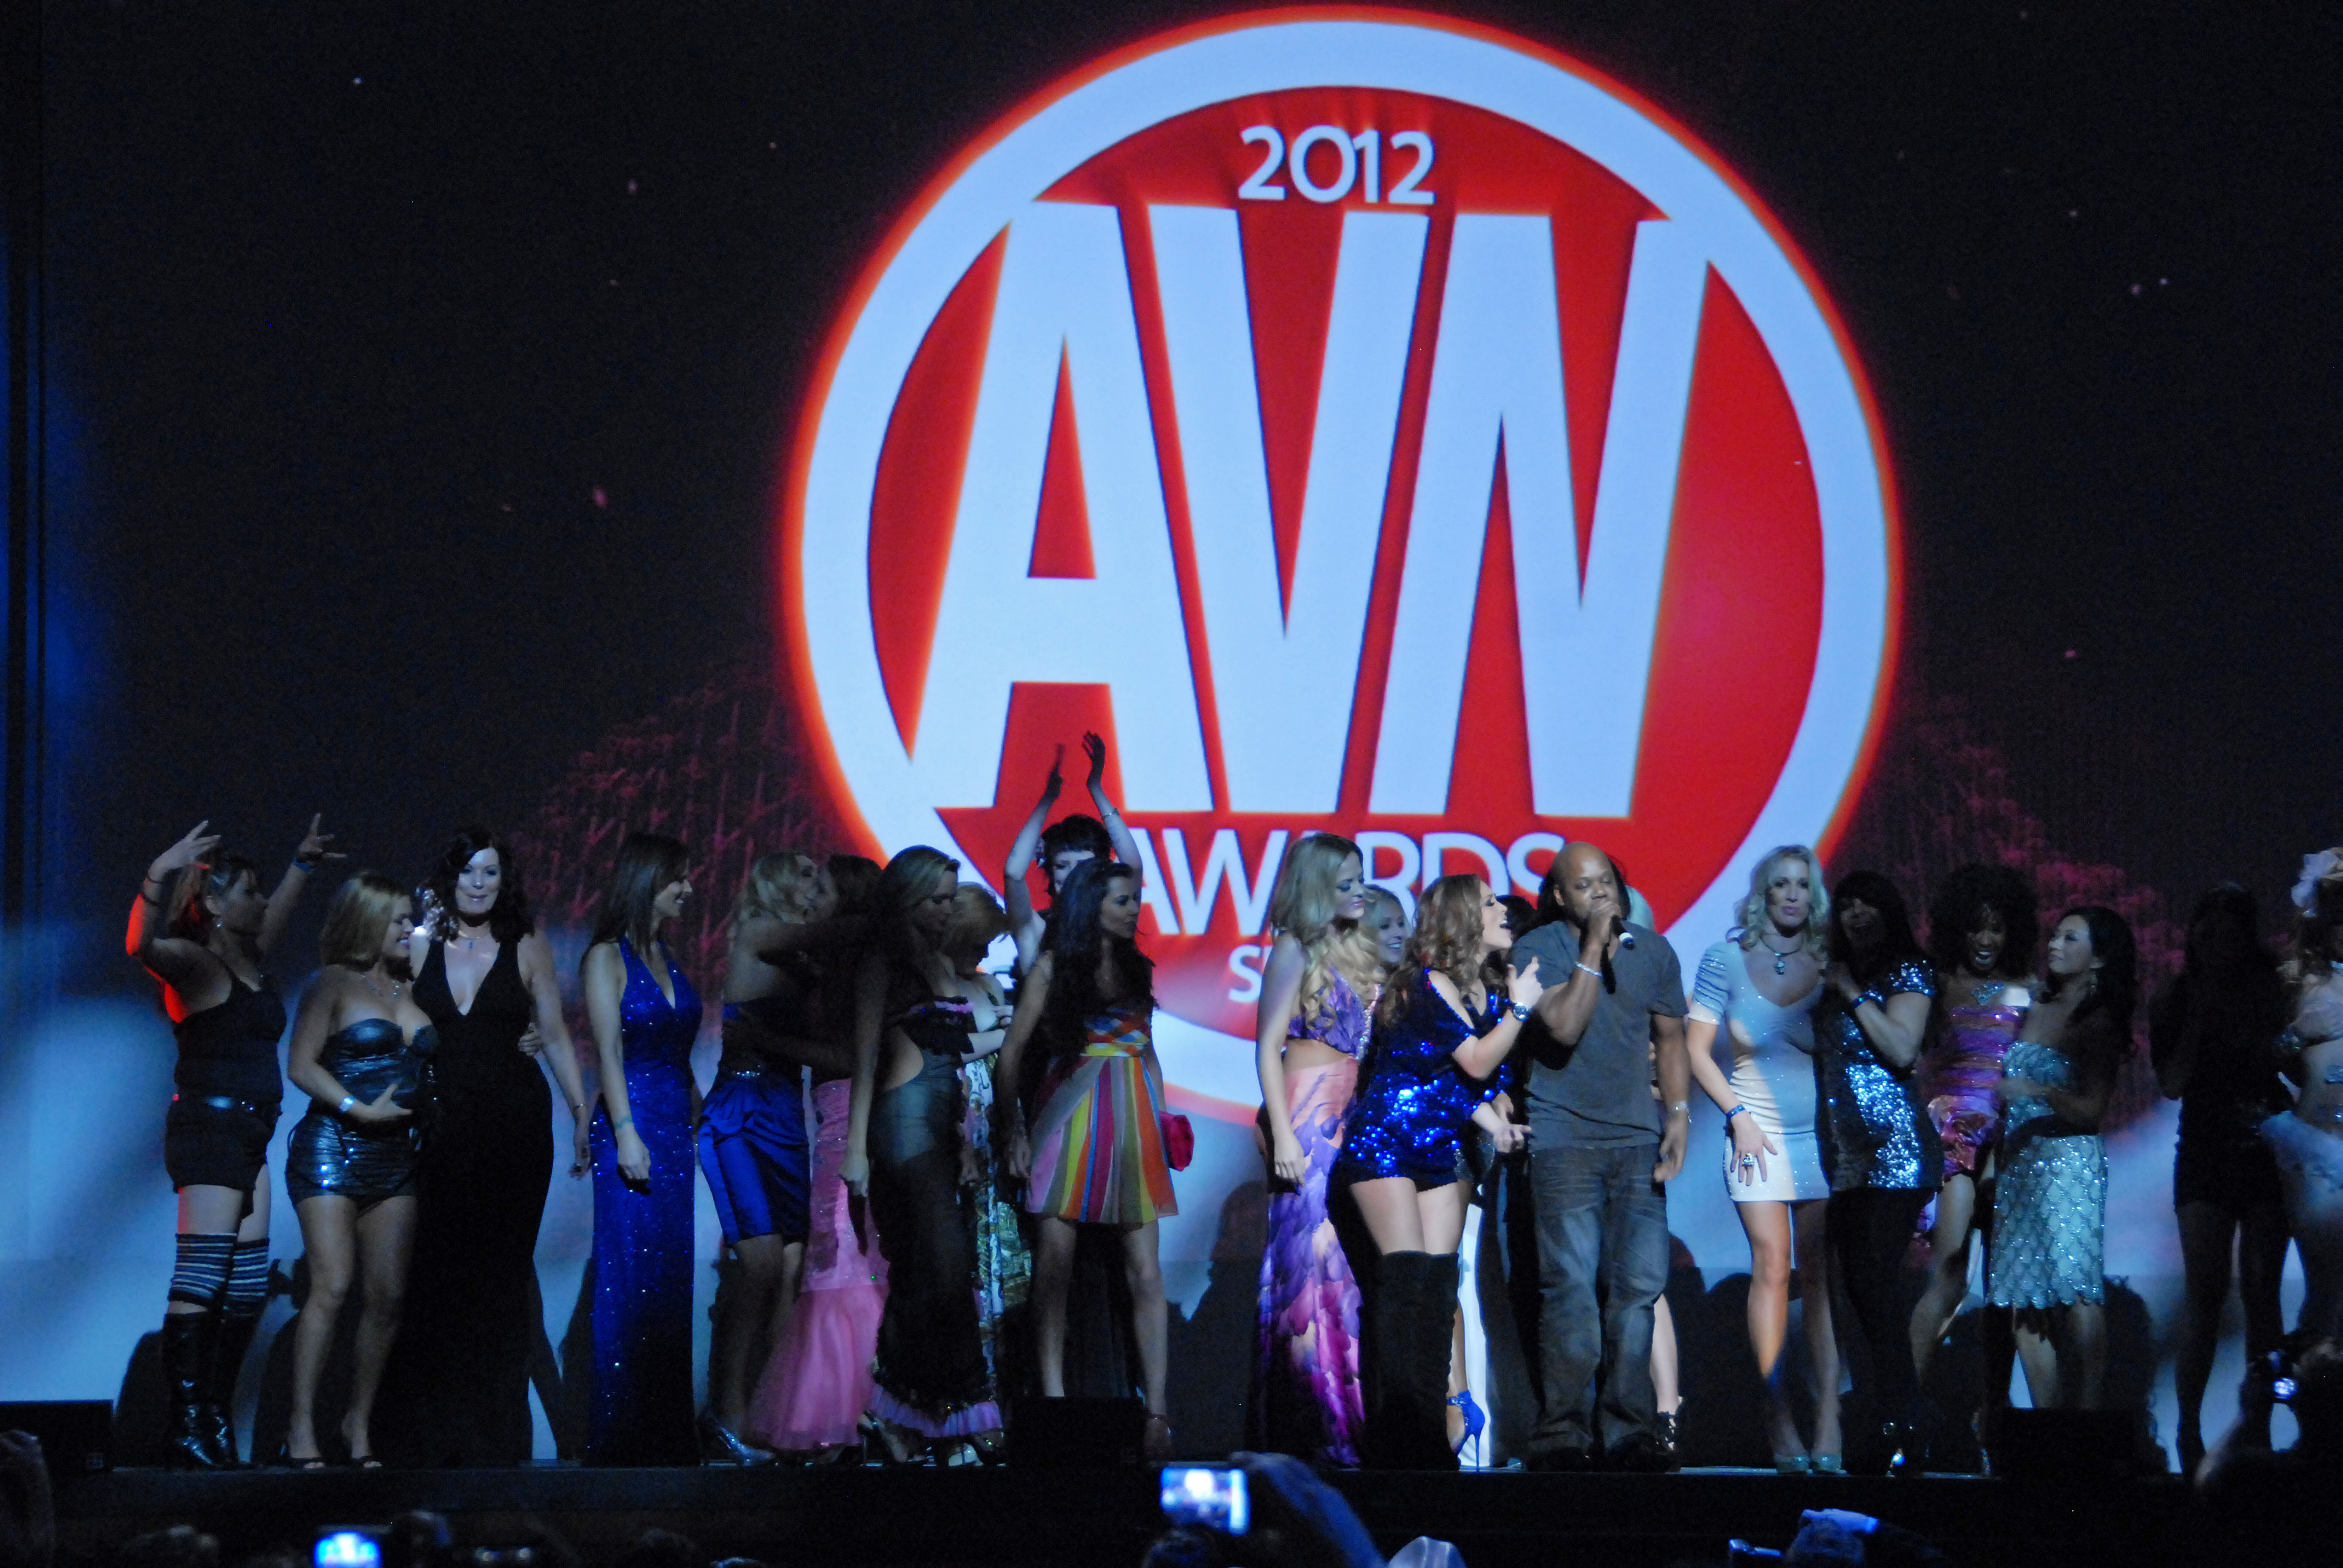 What are the avn awards